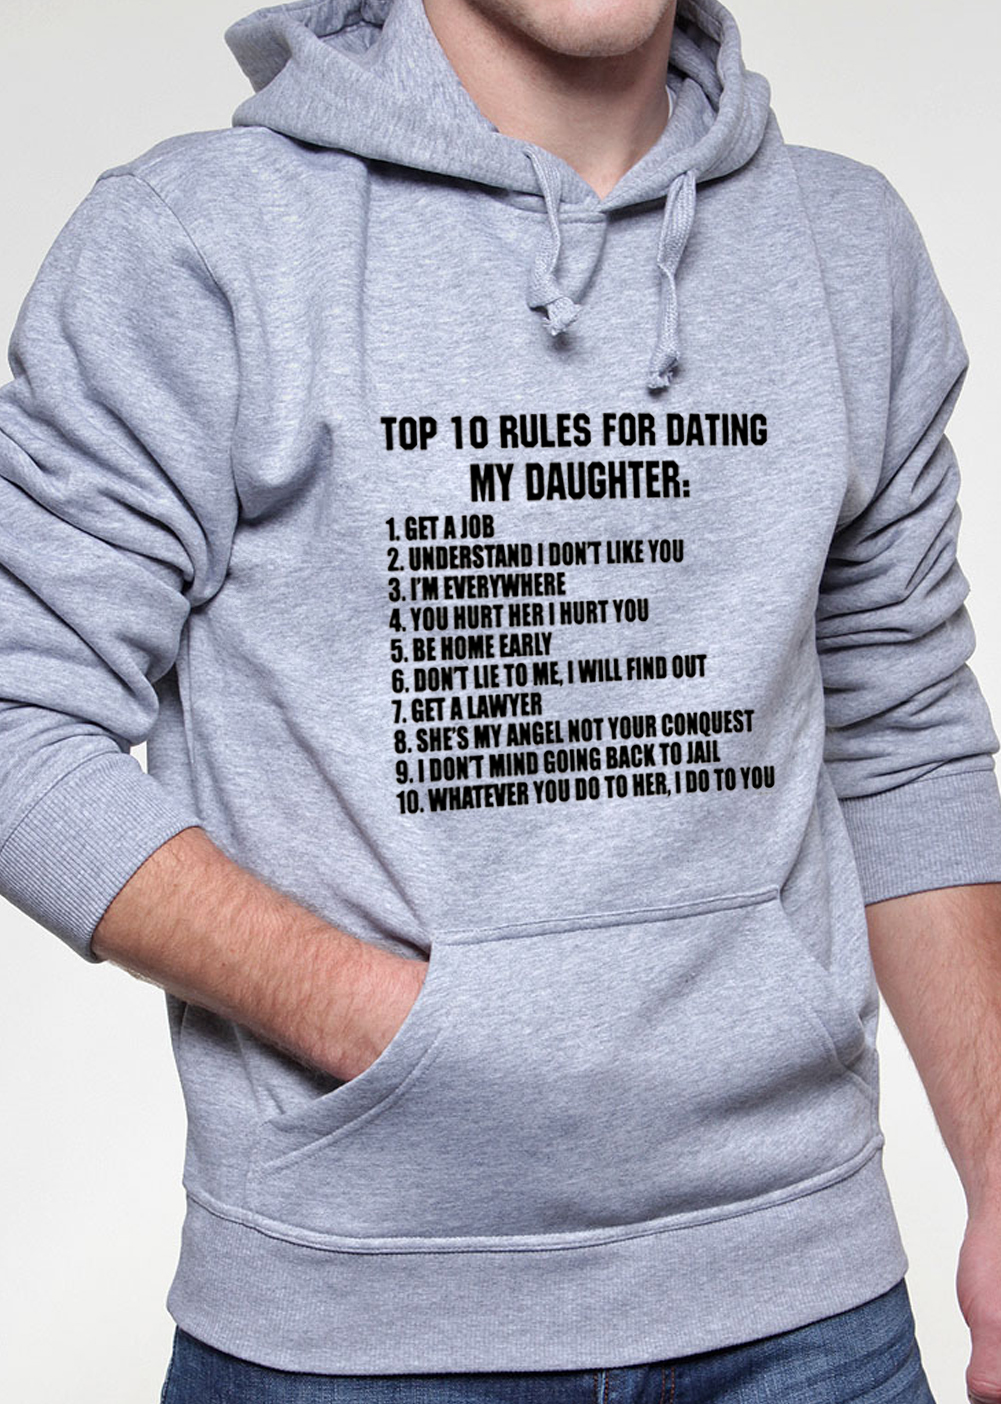 Rules for dating as an adult